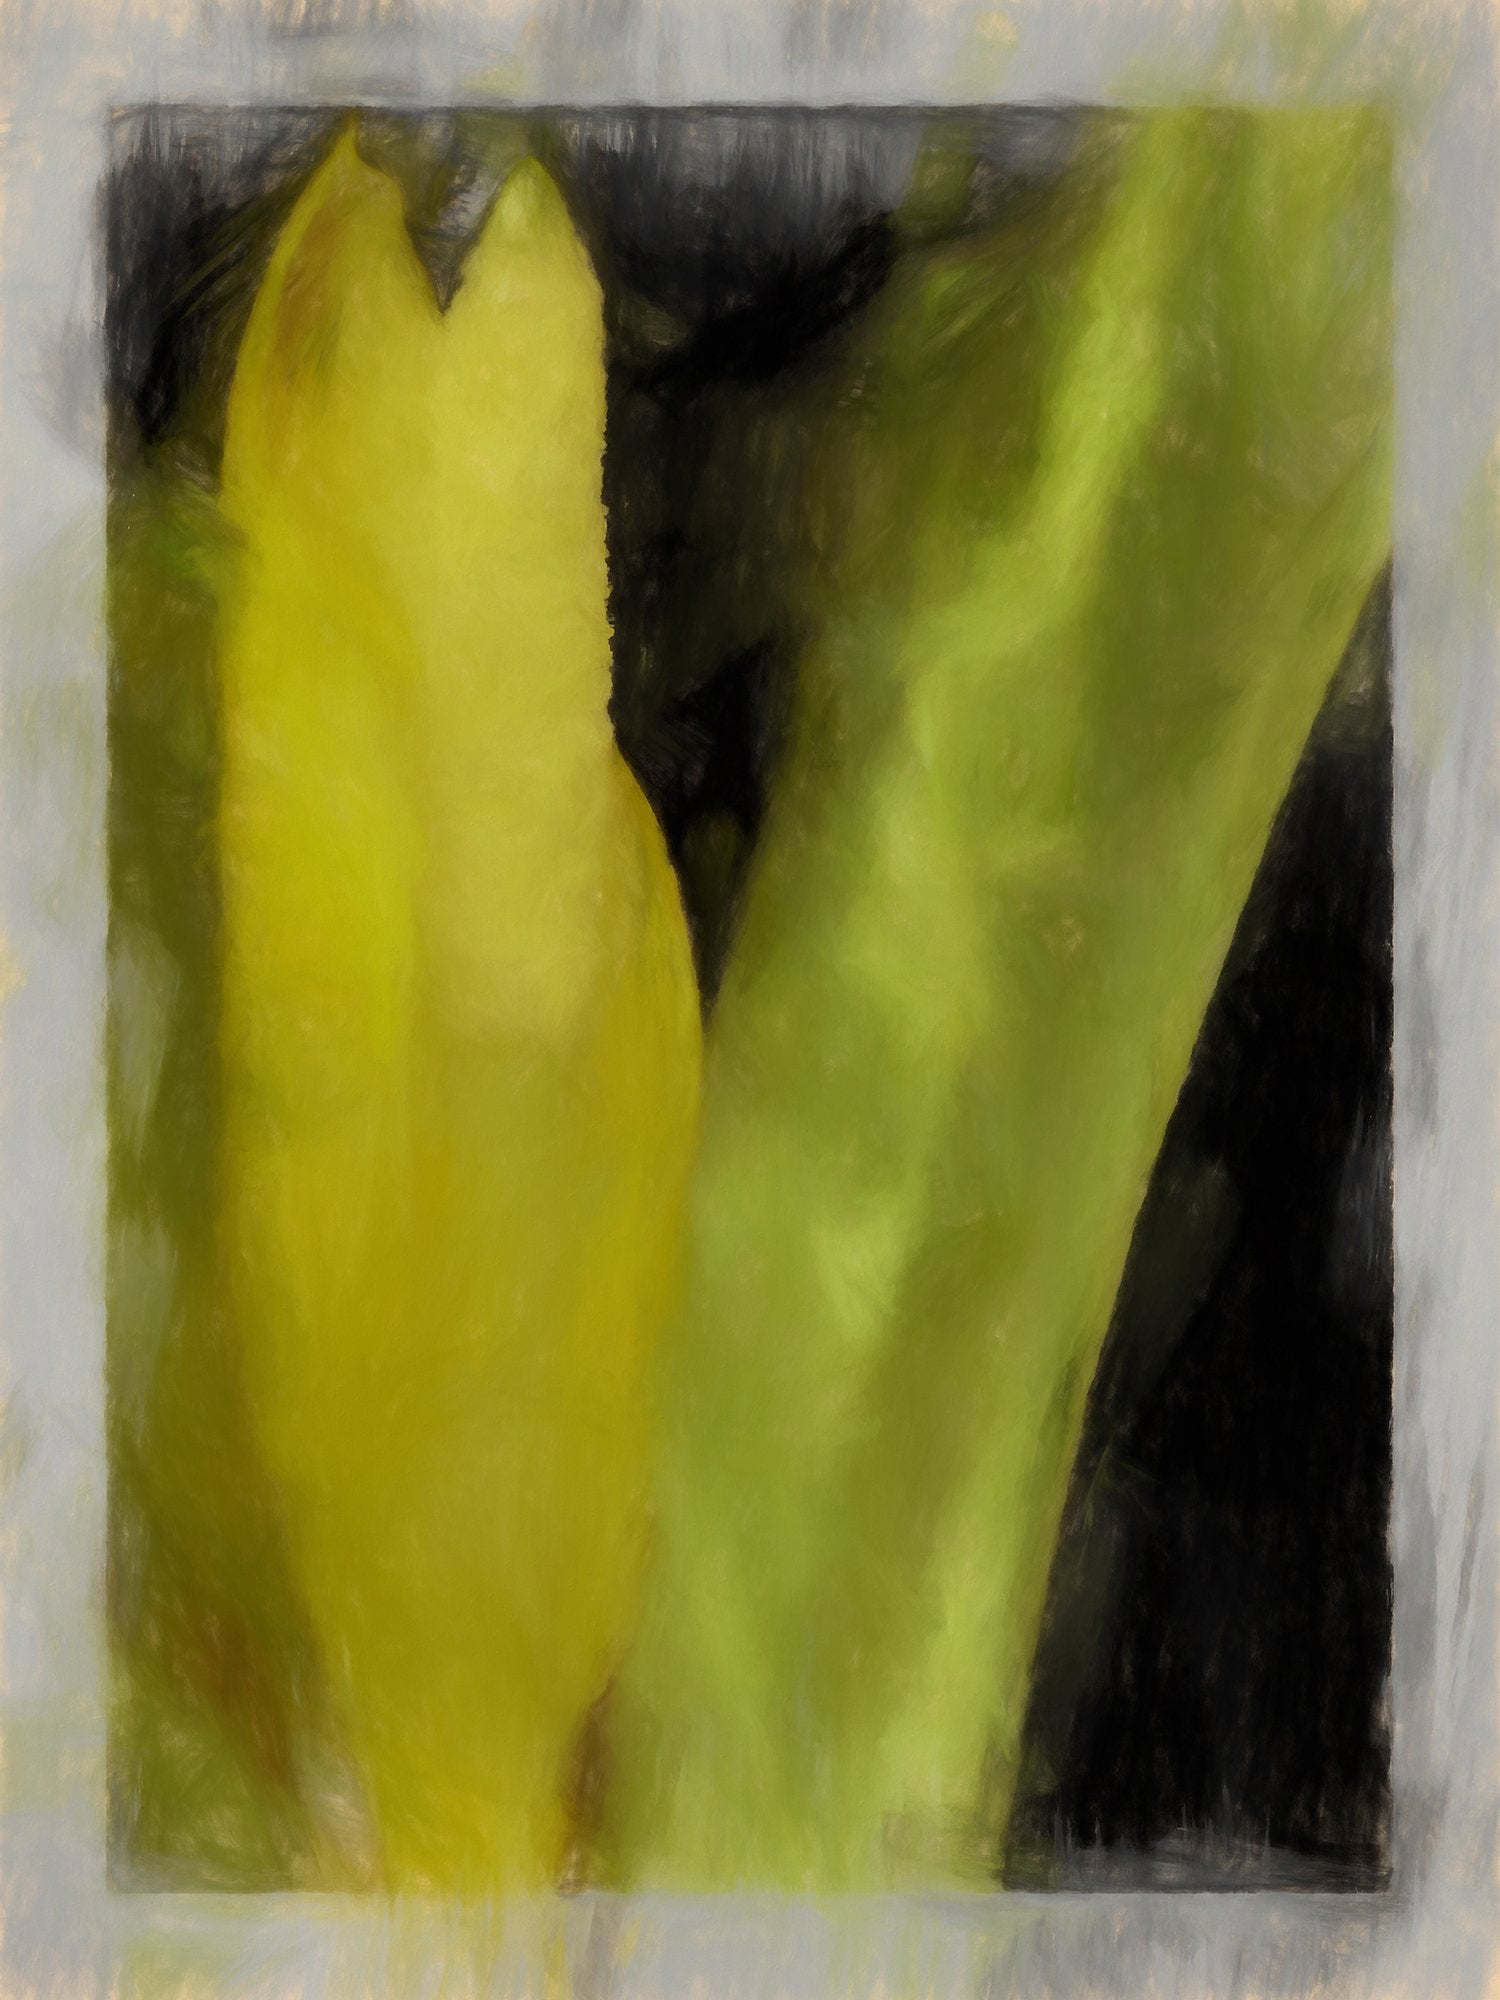 Lysichiton Camtschatcense (Western Skunk Cabbage), Reworked, Series 2